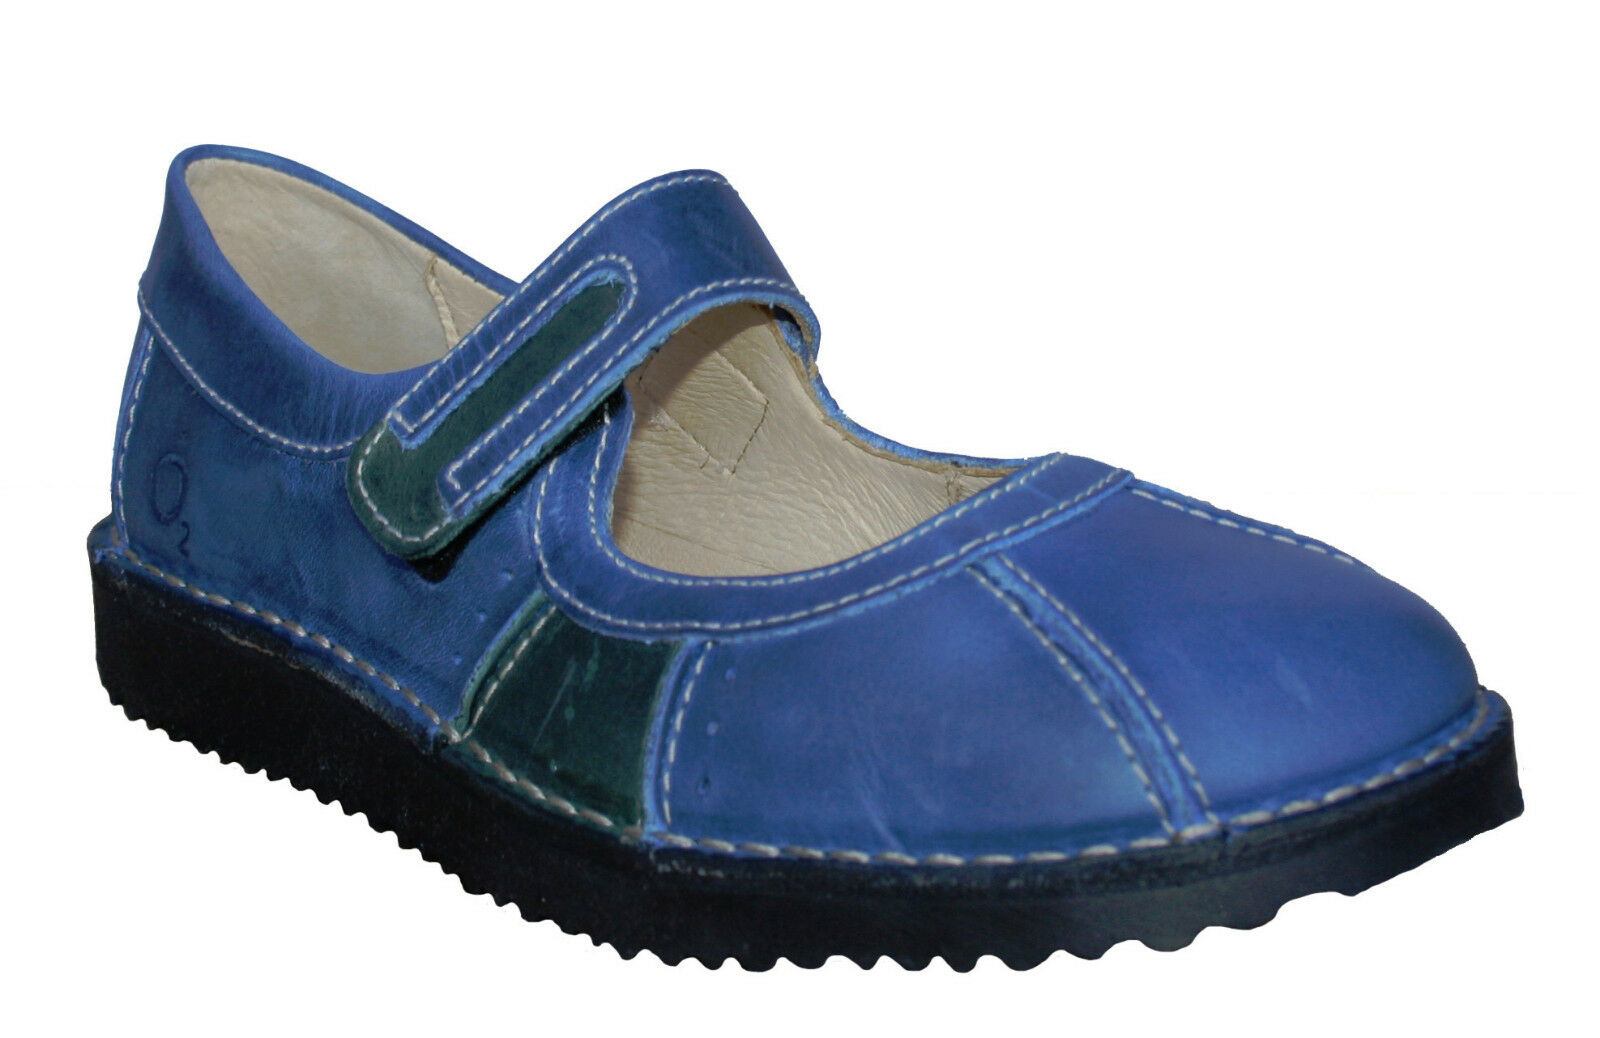 Oxygen Stitch Down Mary Jane Schuhe Rostock Blau Größes 37 to 41 (UK 4-7.5)